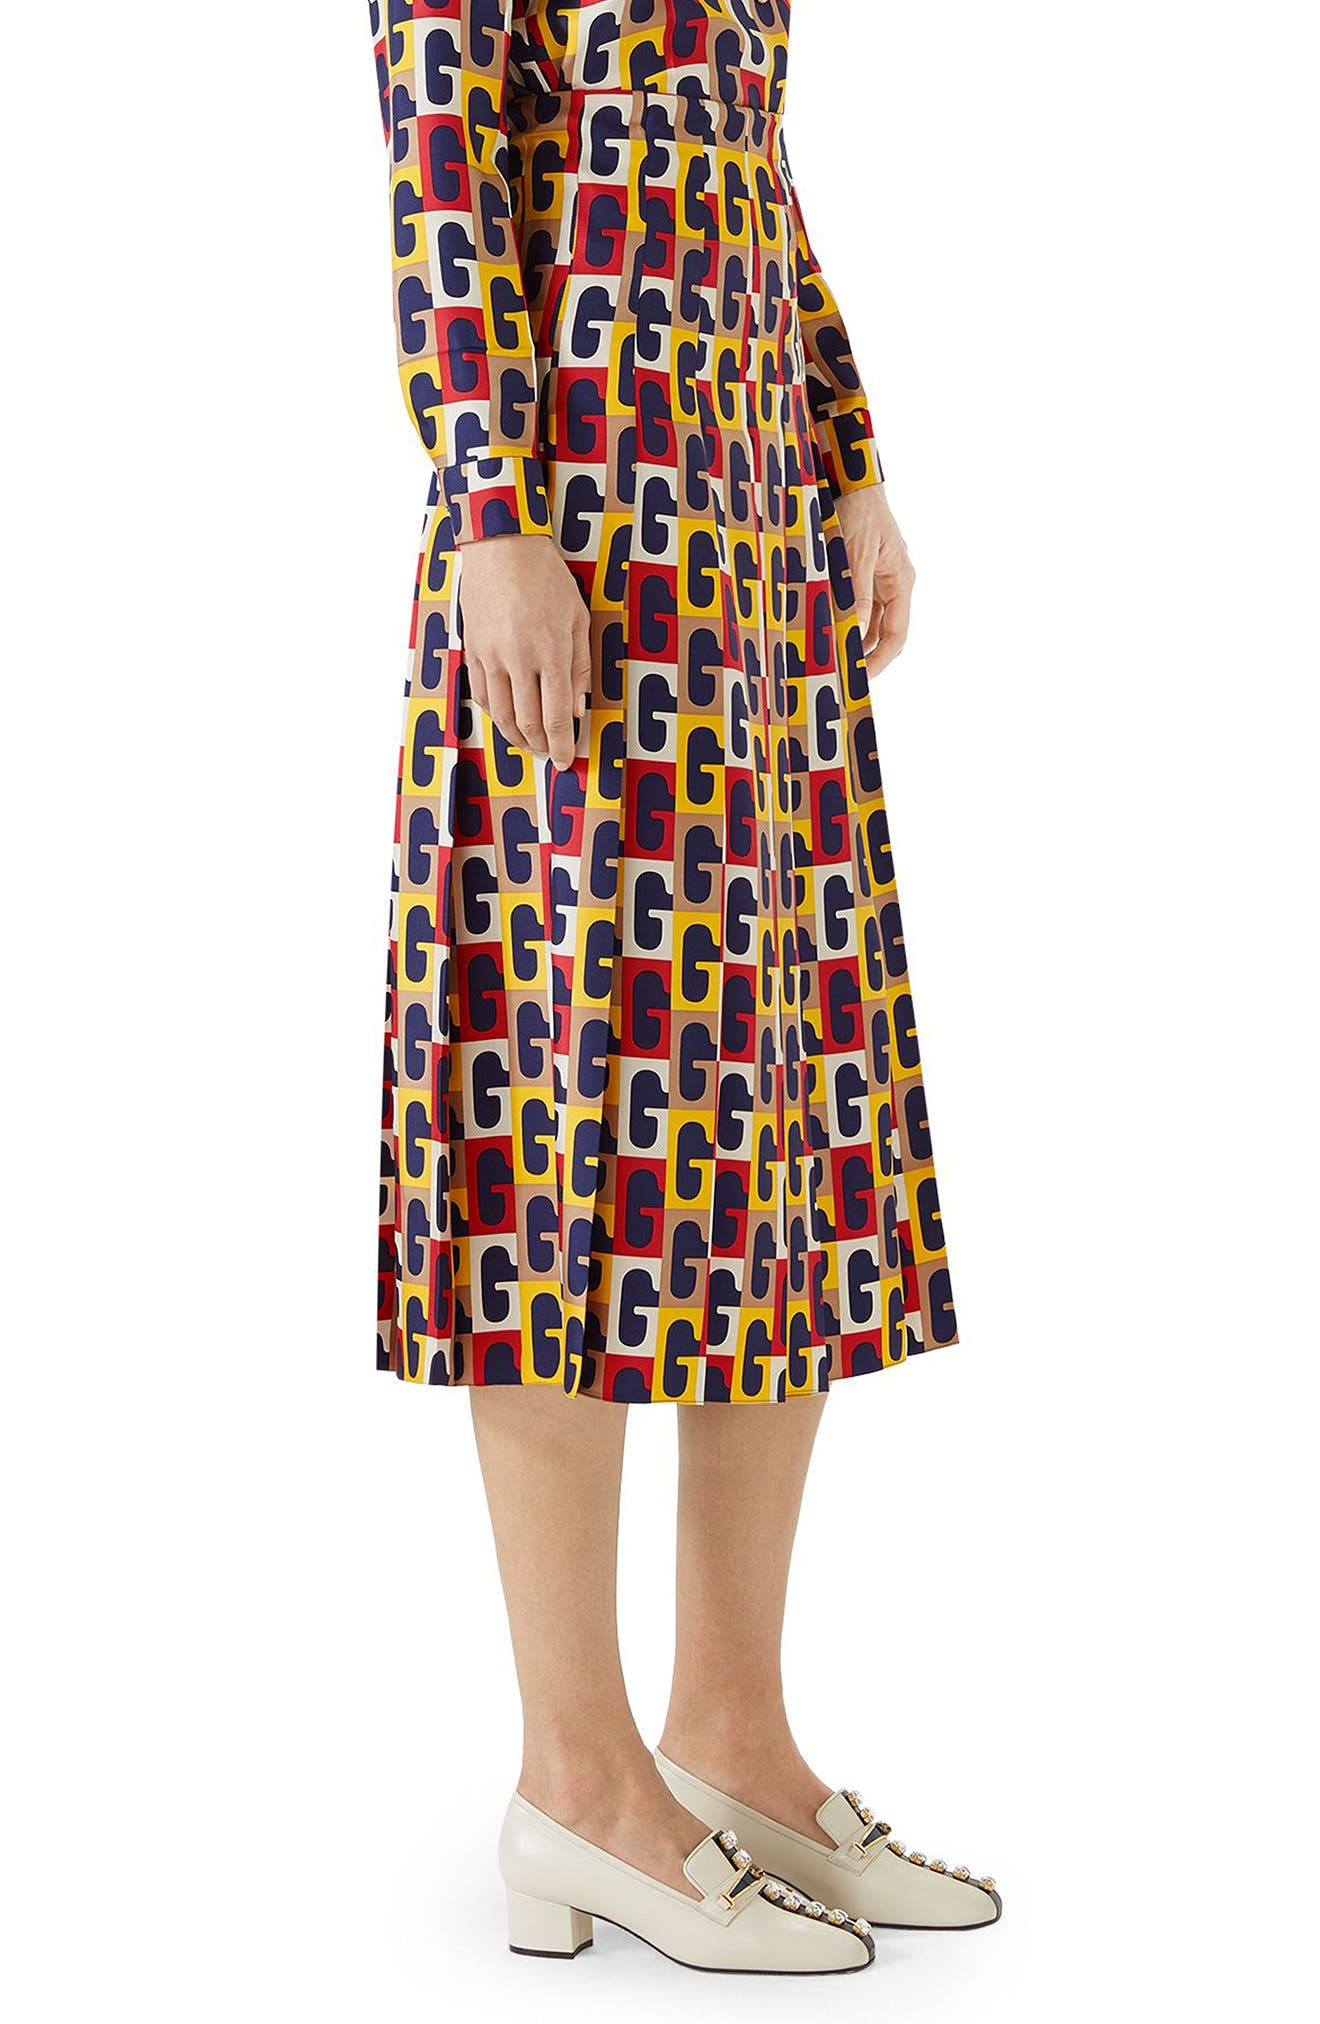 G-Sequence Print Silk Skirt,                             Alternate thumbnail 3, color,                             Ivory/ Yellow/ Red Print